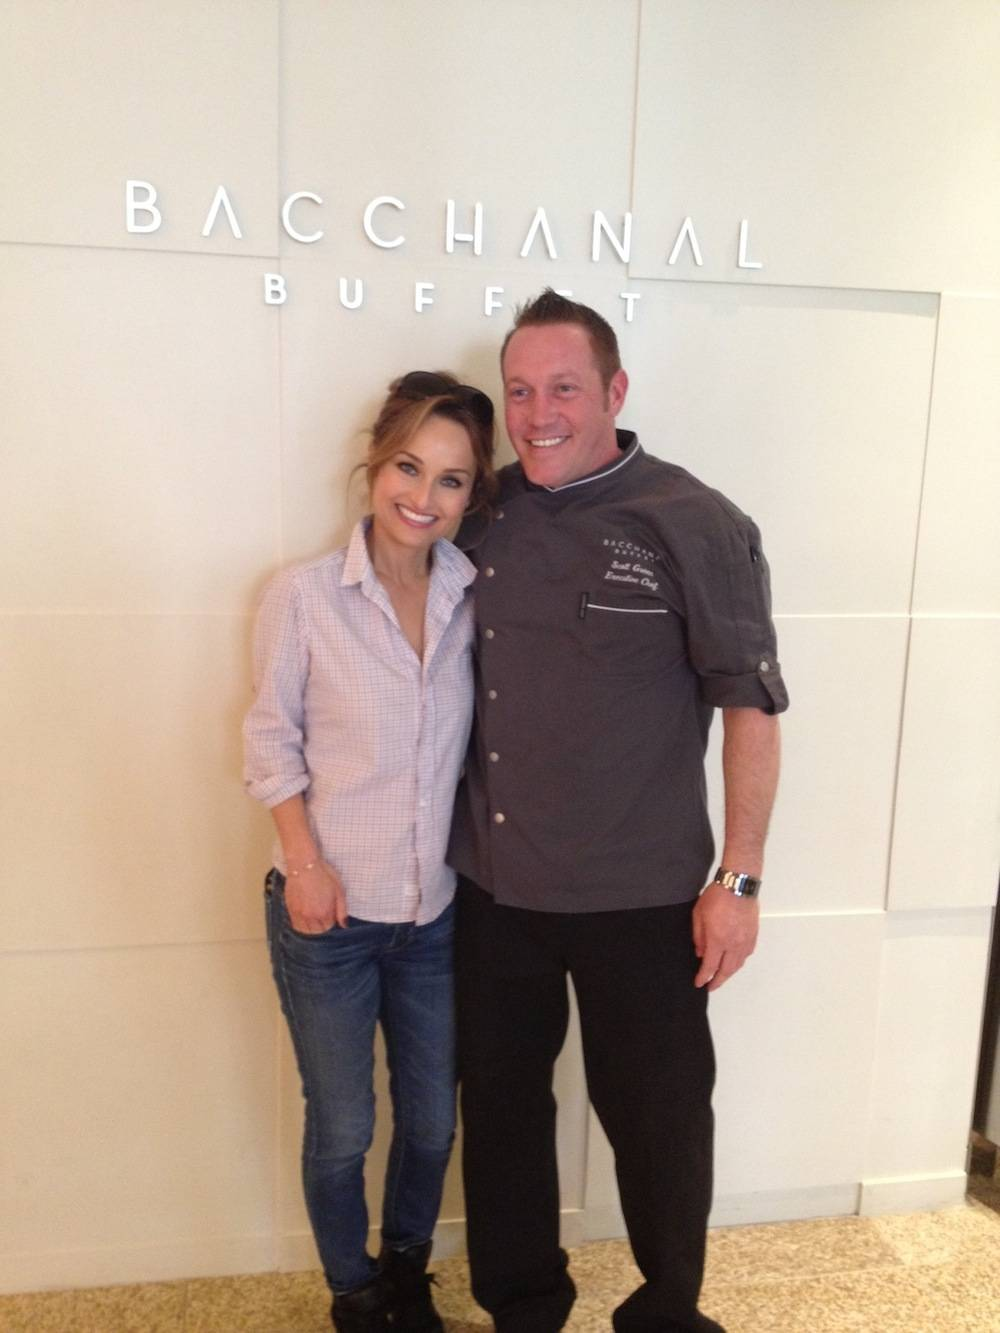 Celebrity Chef Giada De Laurentiis and Bacchanal Buffet's Executive Chef Scott Green at the Bacchanal Buffet at Caesars Palace